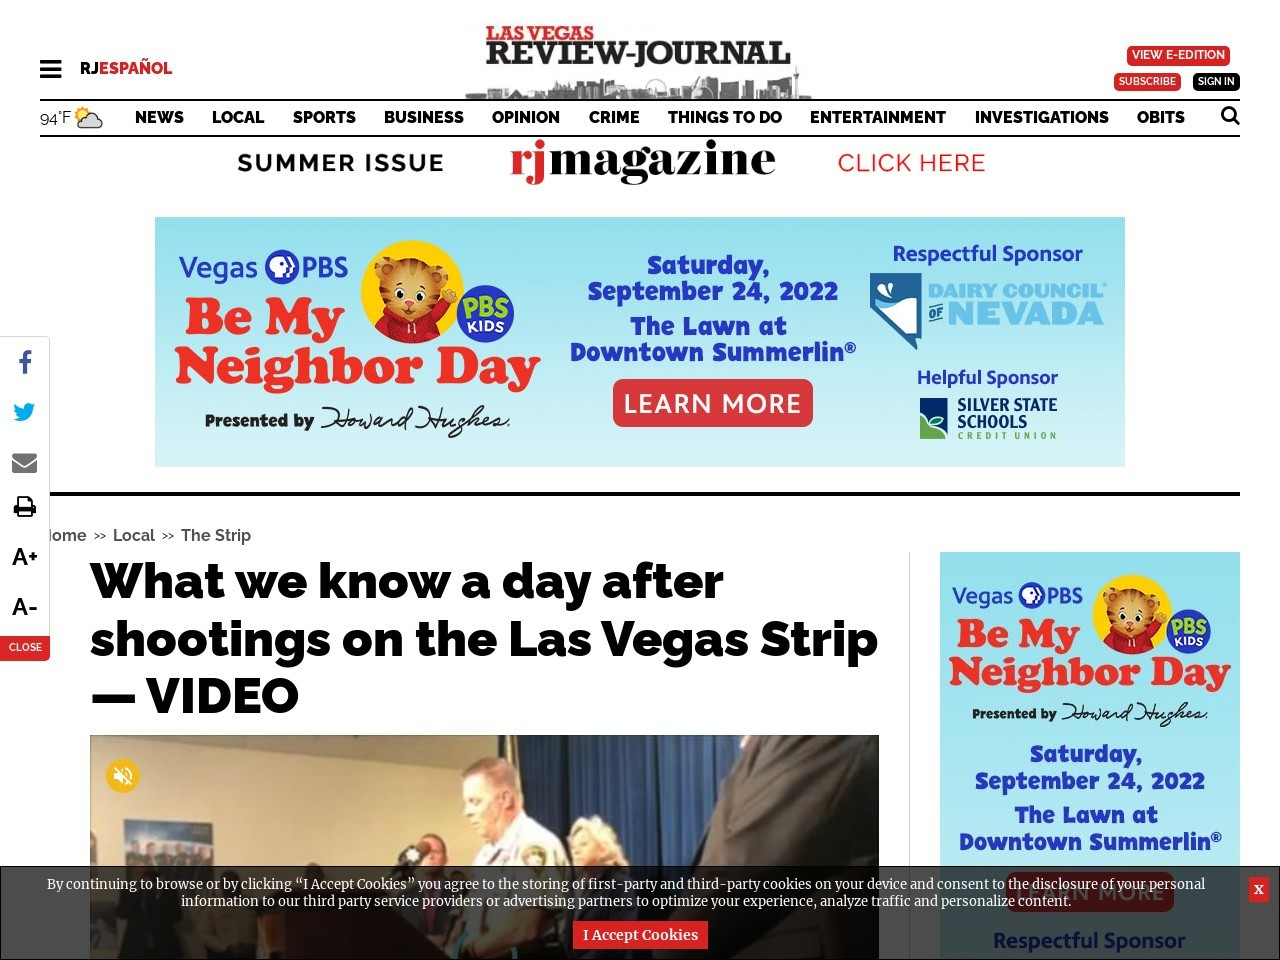 What we know a day after shootings on the Las Vegas Strip — VIDEO